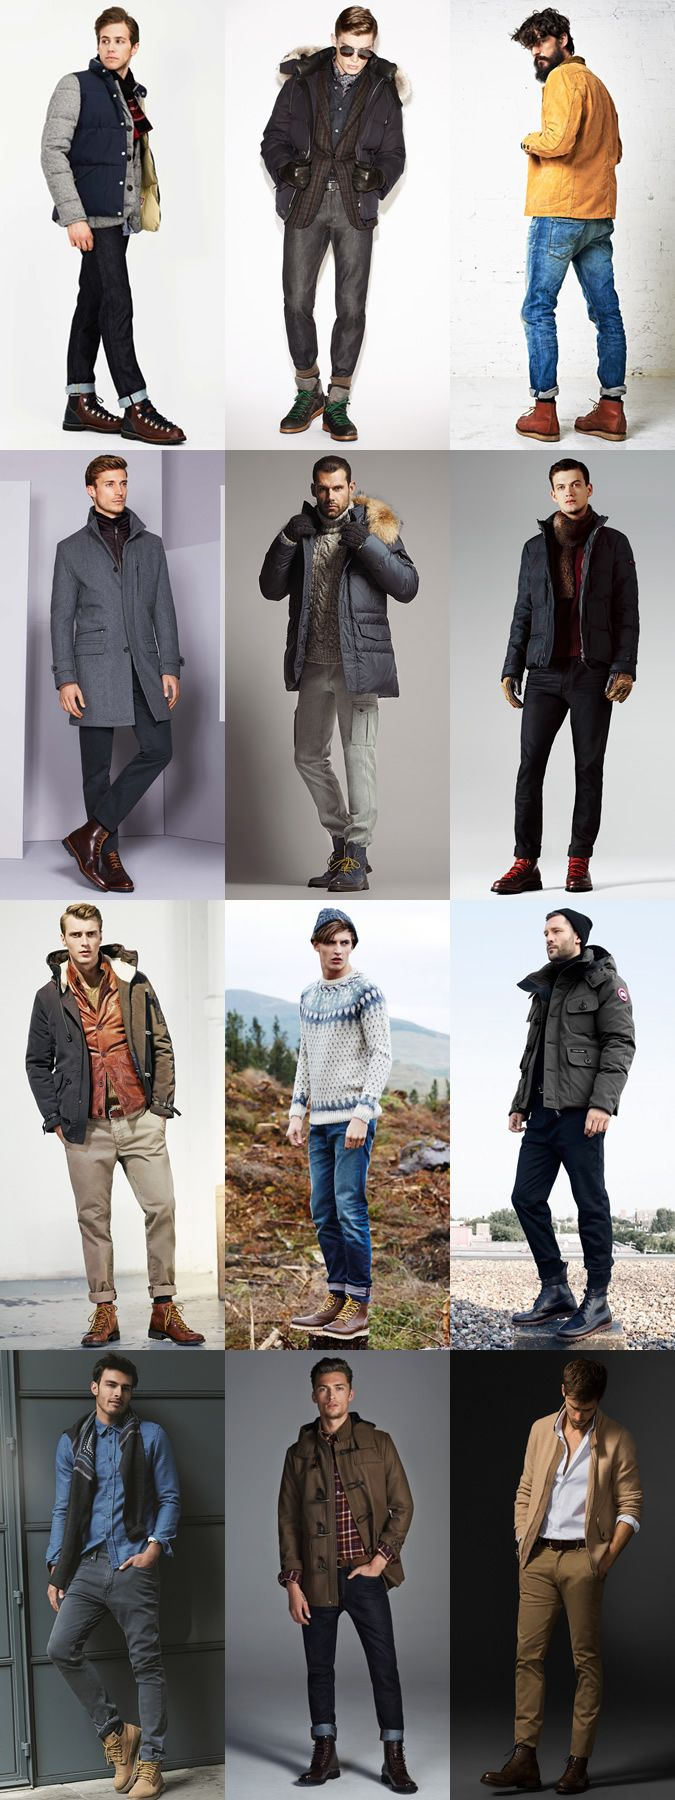 Men's Heavy Duty, Practical Outdoor/Hiking/Worker Boots - Autumn/Winter Outfit Inspiration Lookbook